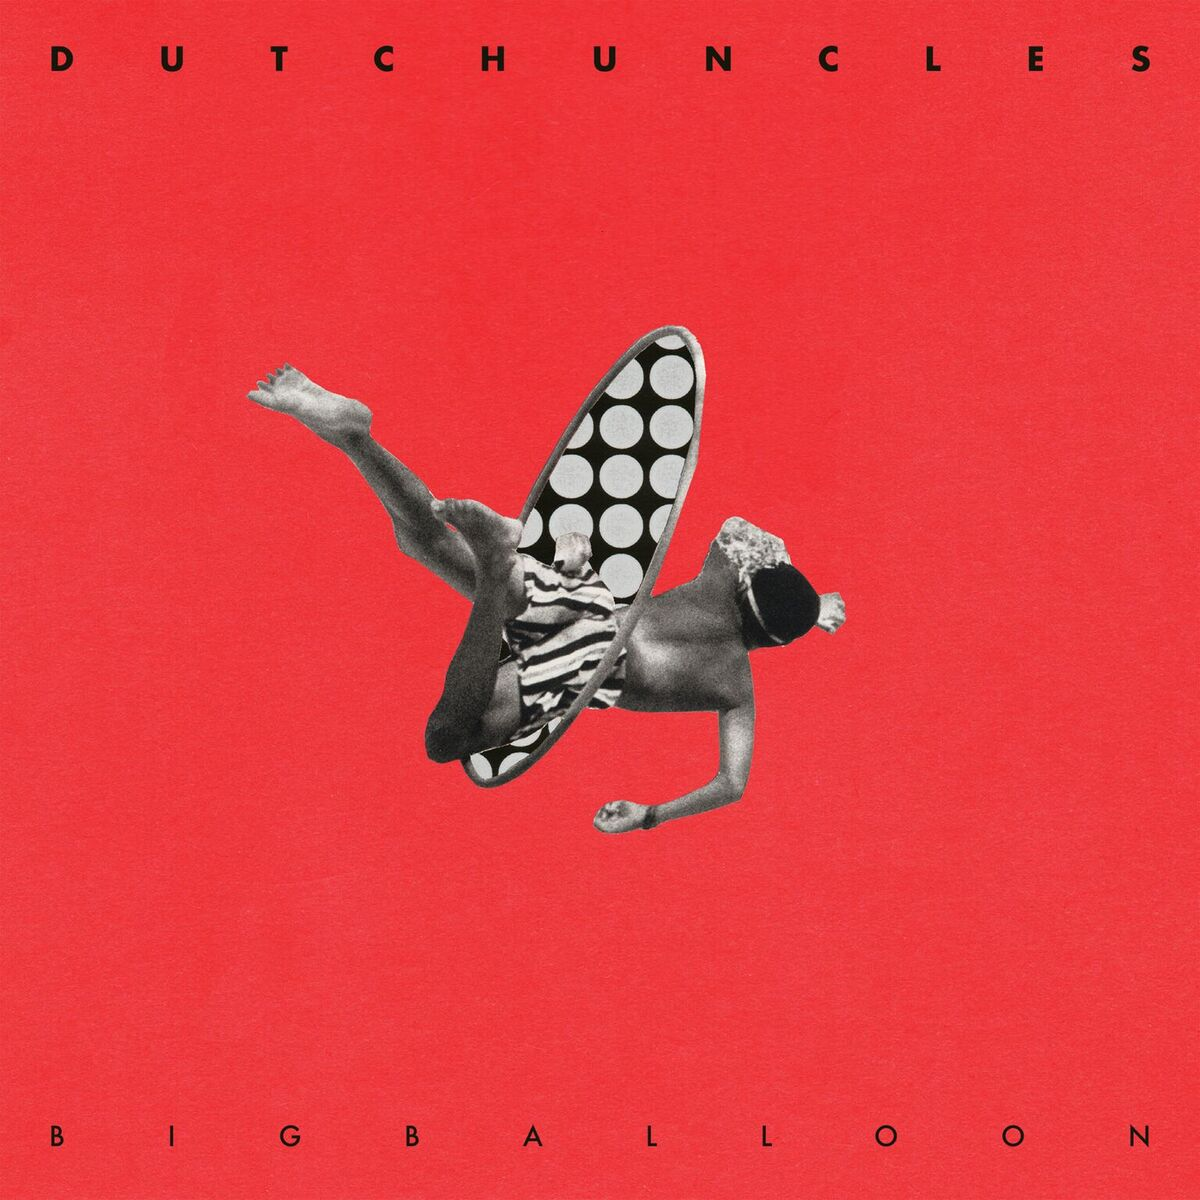 Image result for dutch uncles big balloon album cover